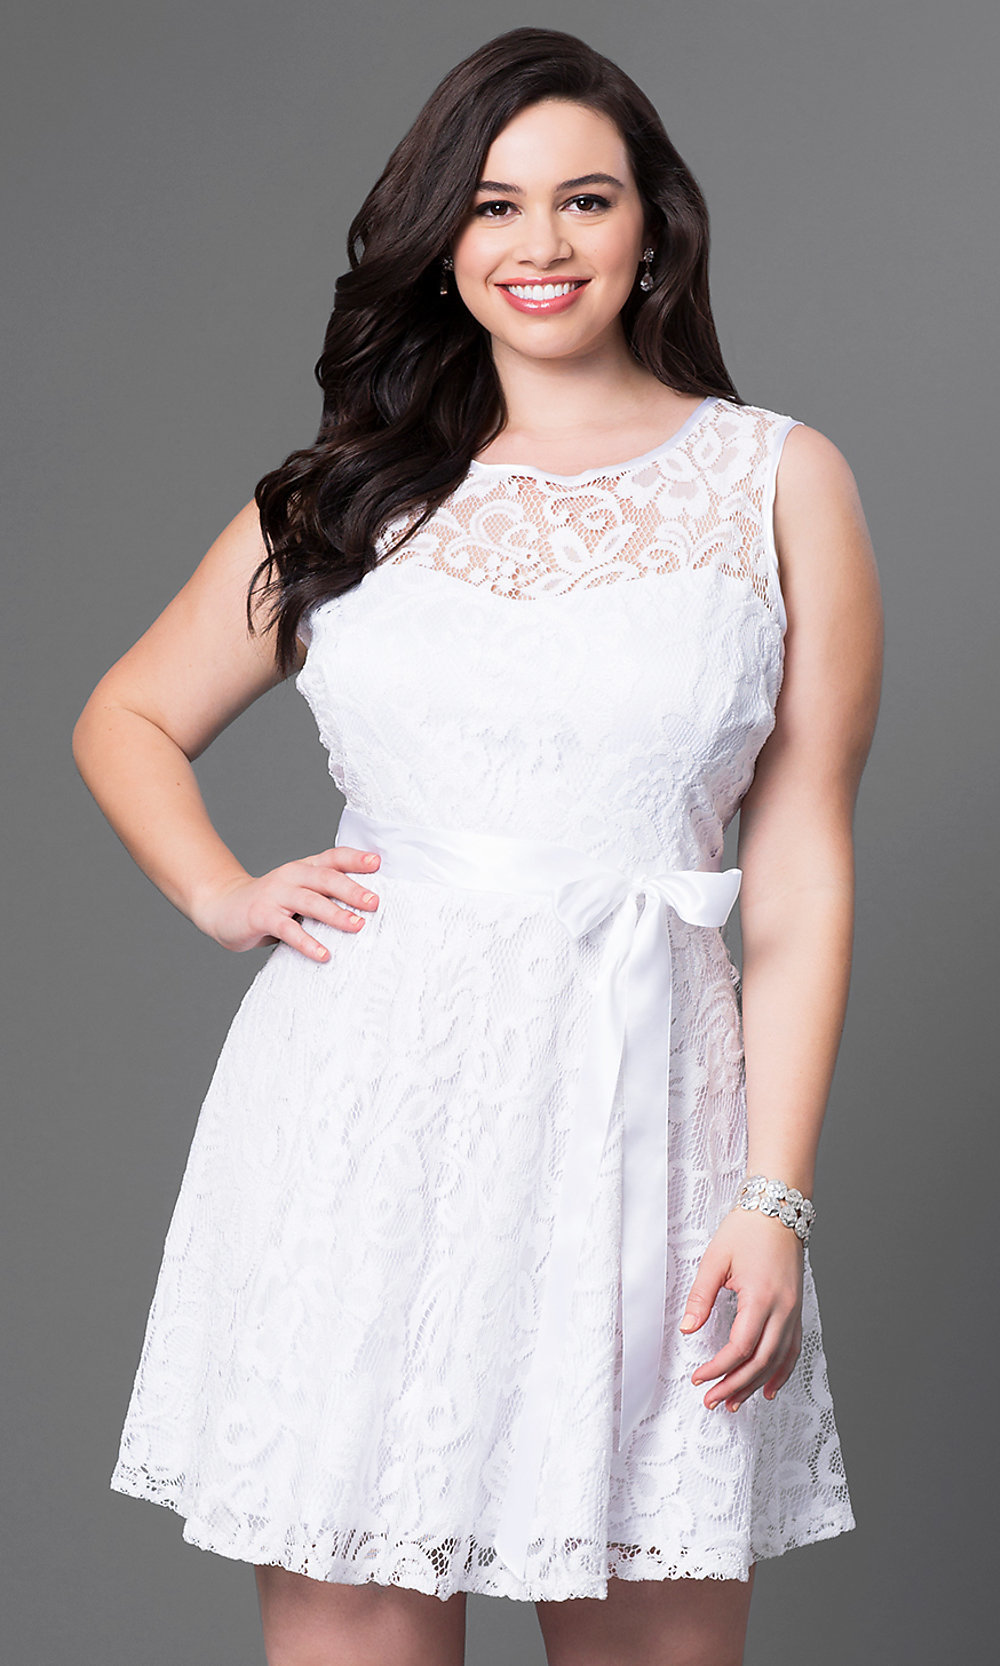 Short Floral-Lace Plus-Size Party Dress with Bow